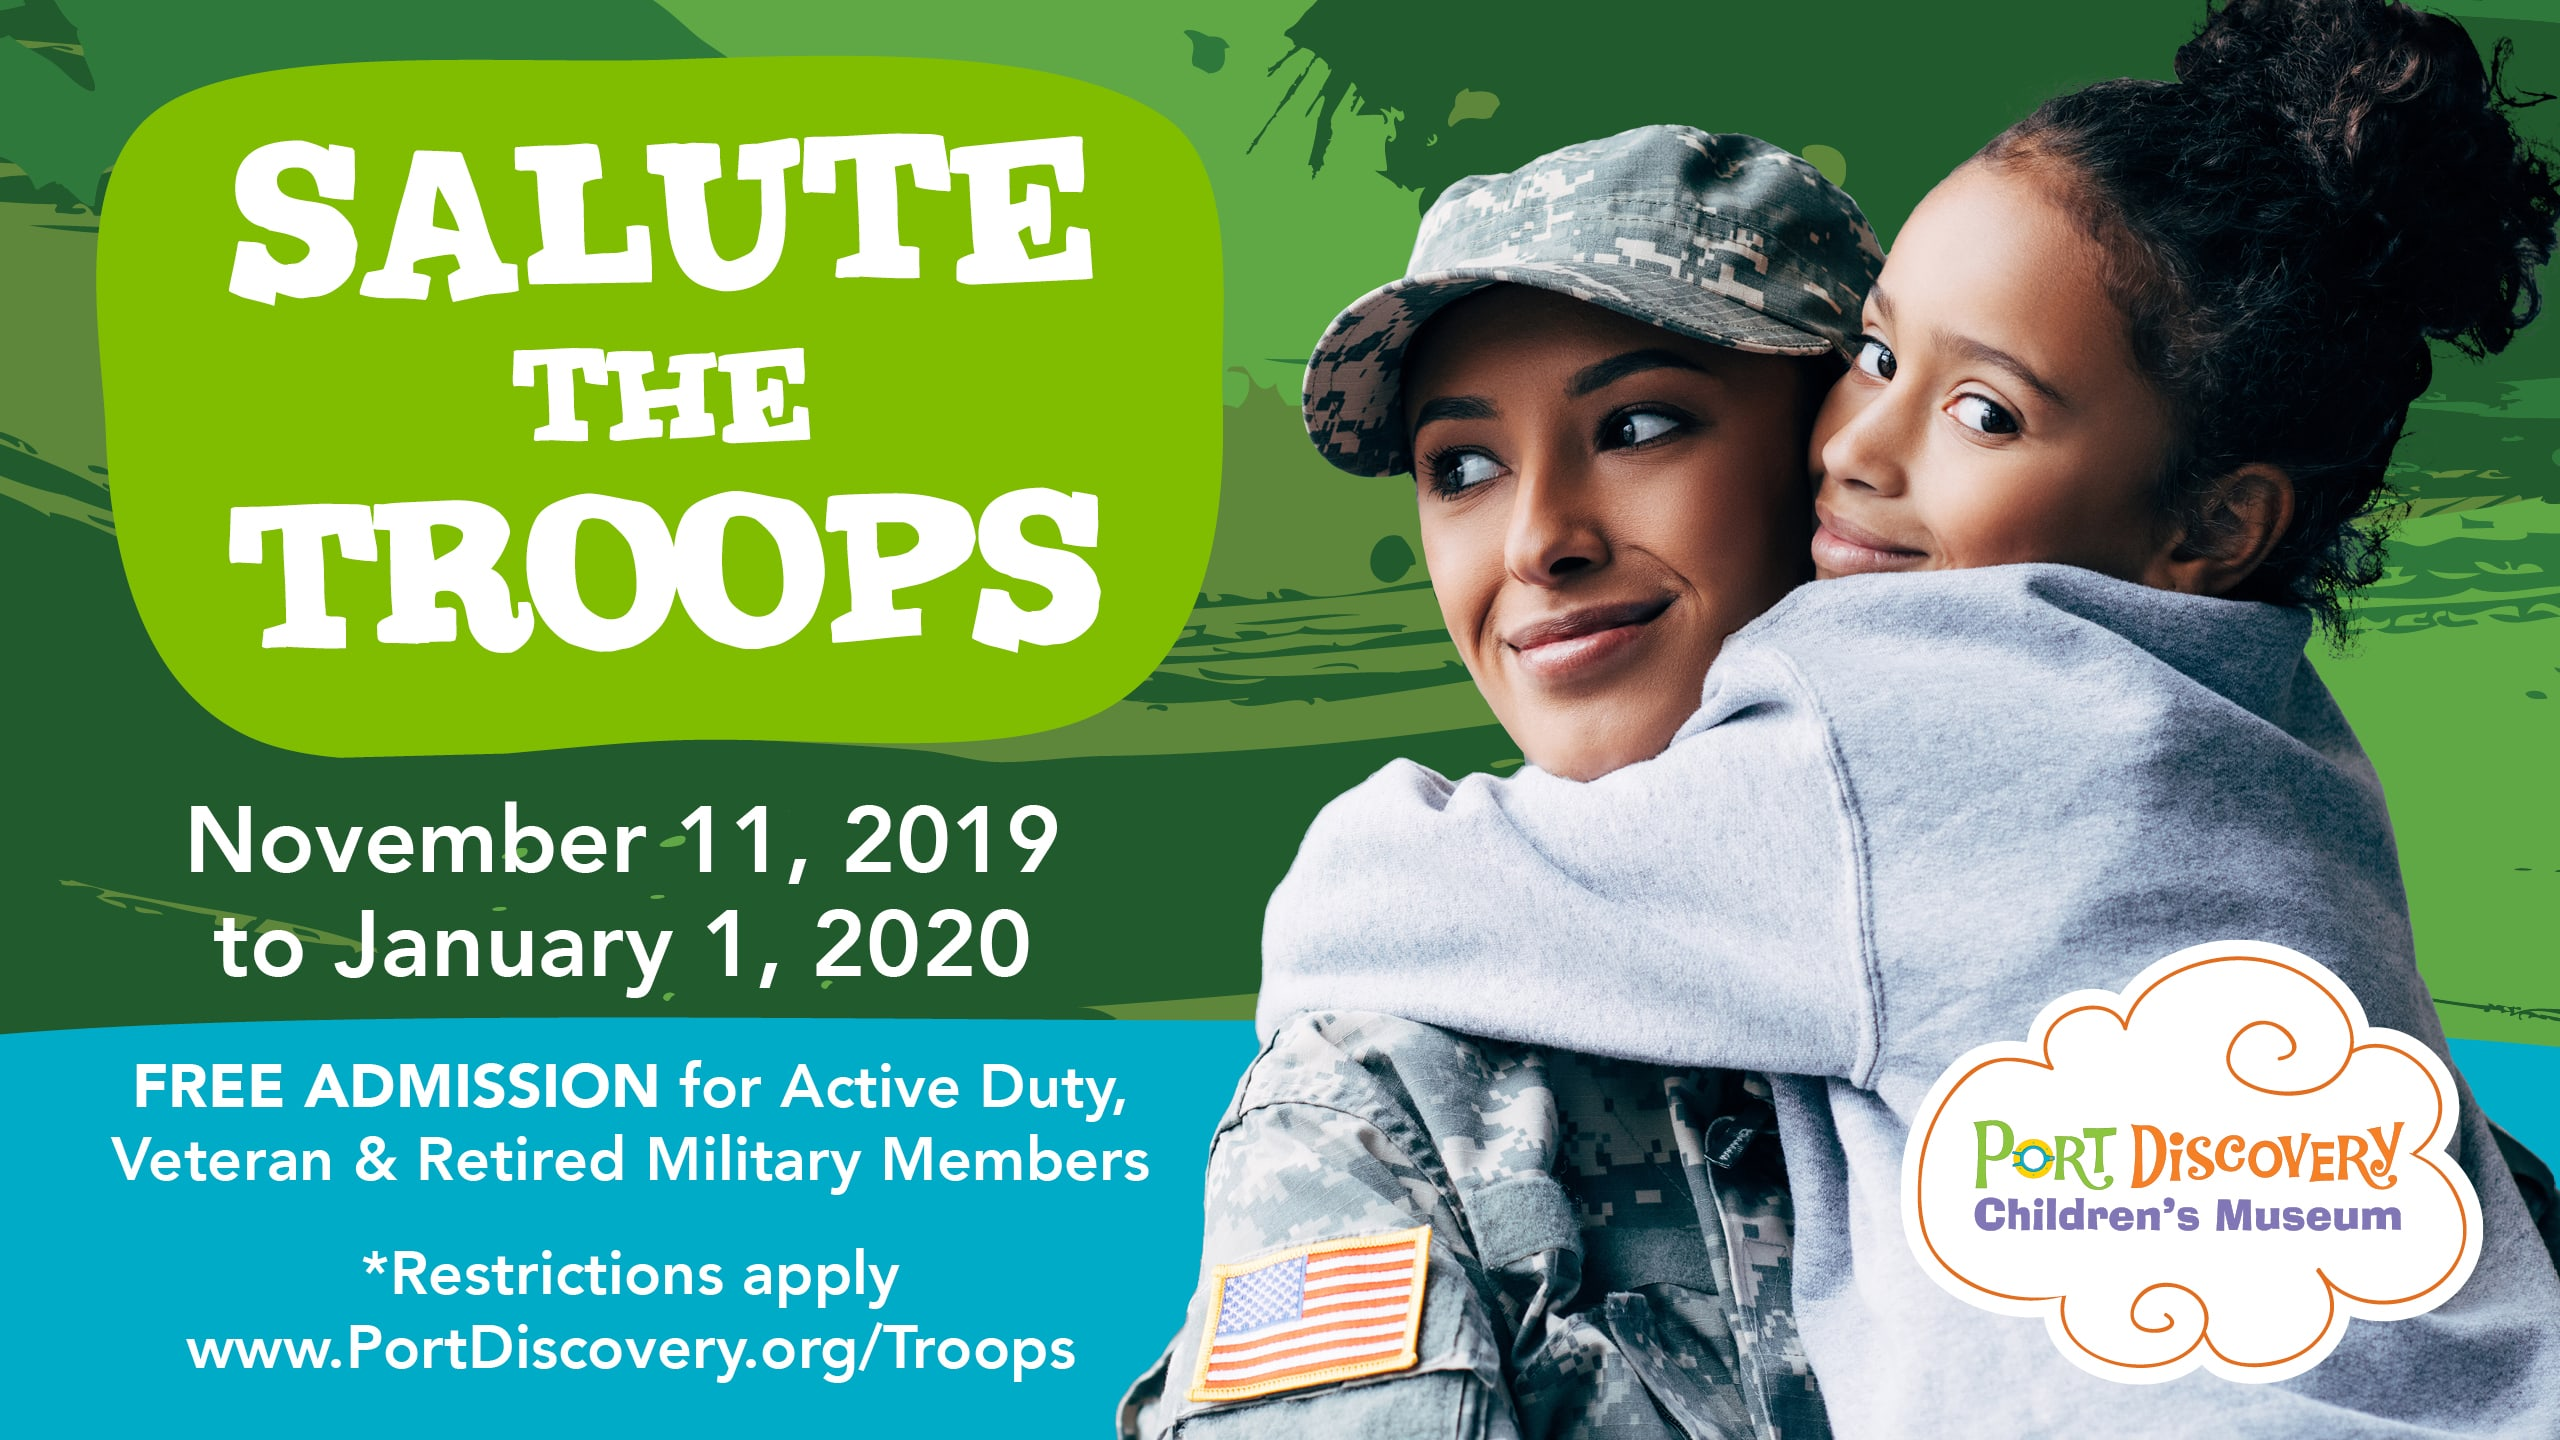 Salute the Troops - November 11, 2019 - January 1, 2020